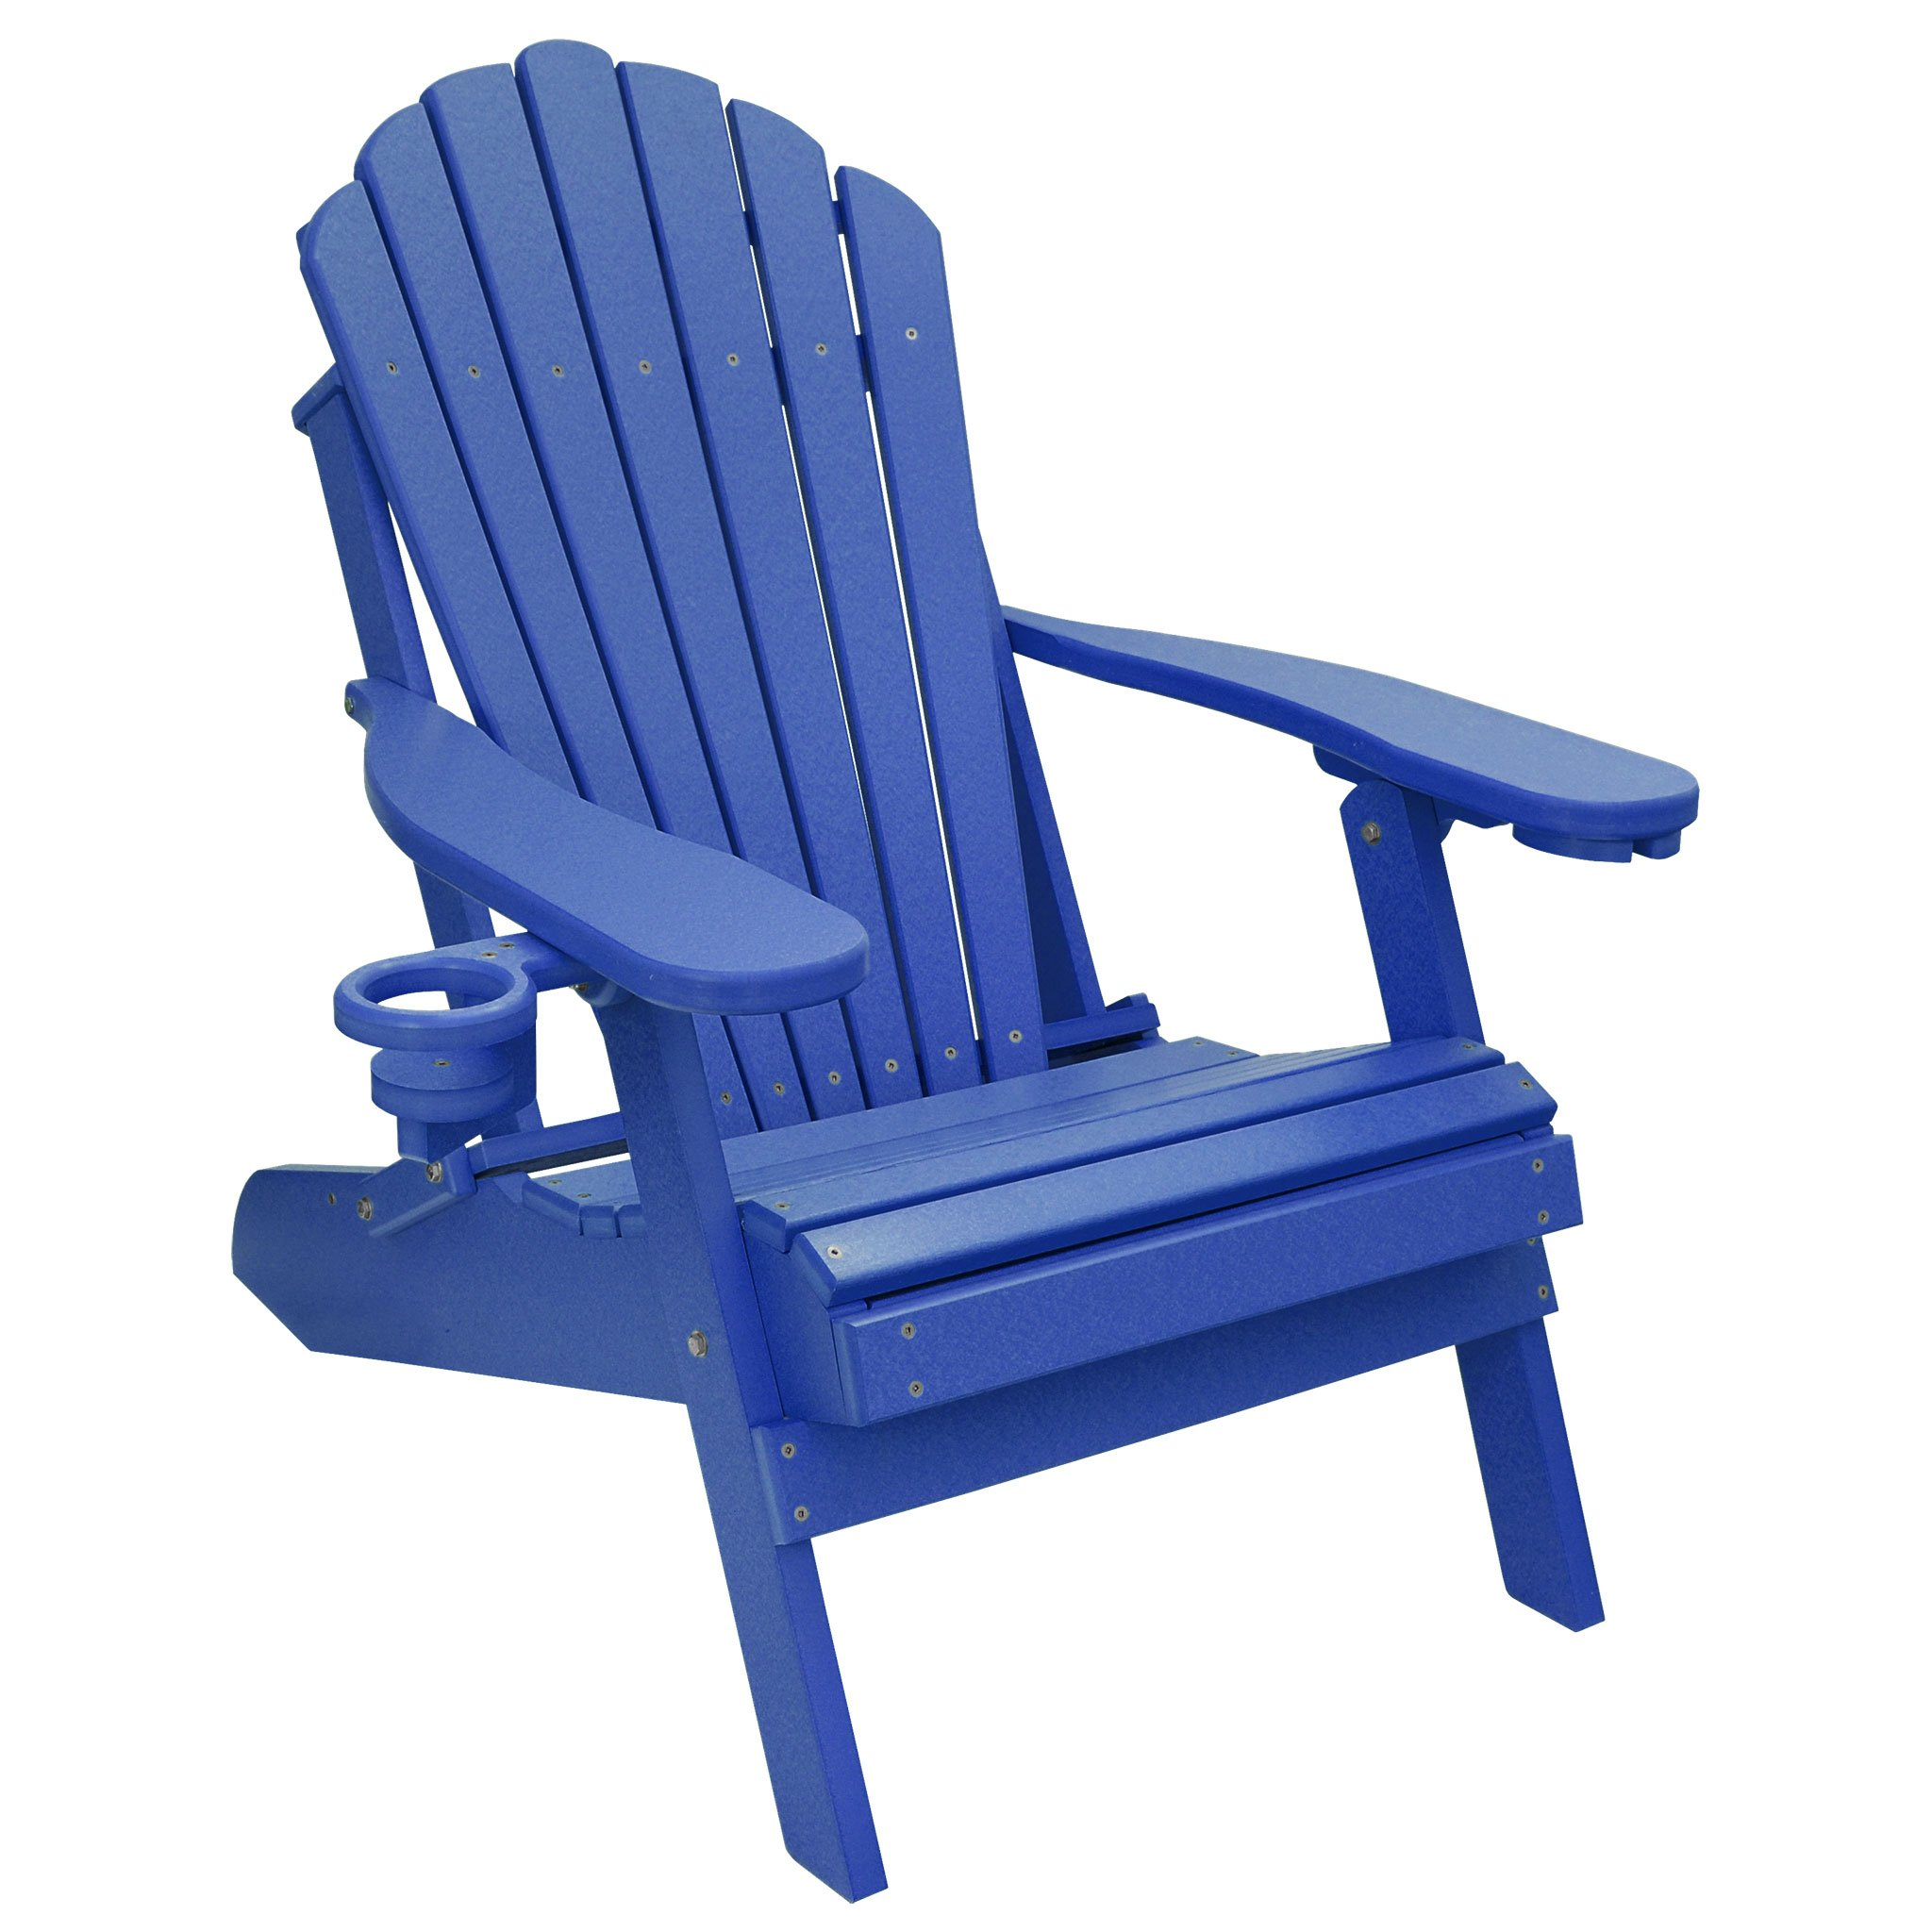 ECCB Outdoor Outer Banks Deluxe Oversized Poly Lumber Folding Adirondack Chair (Royal Blue)